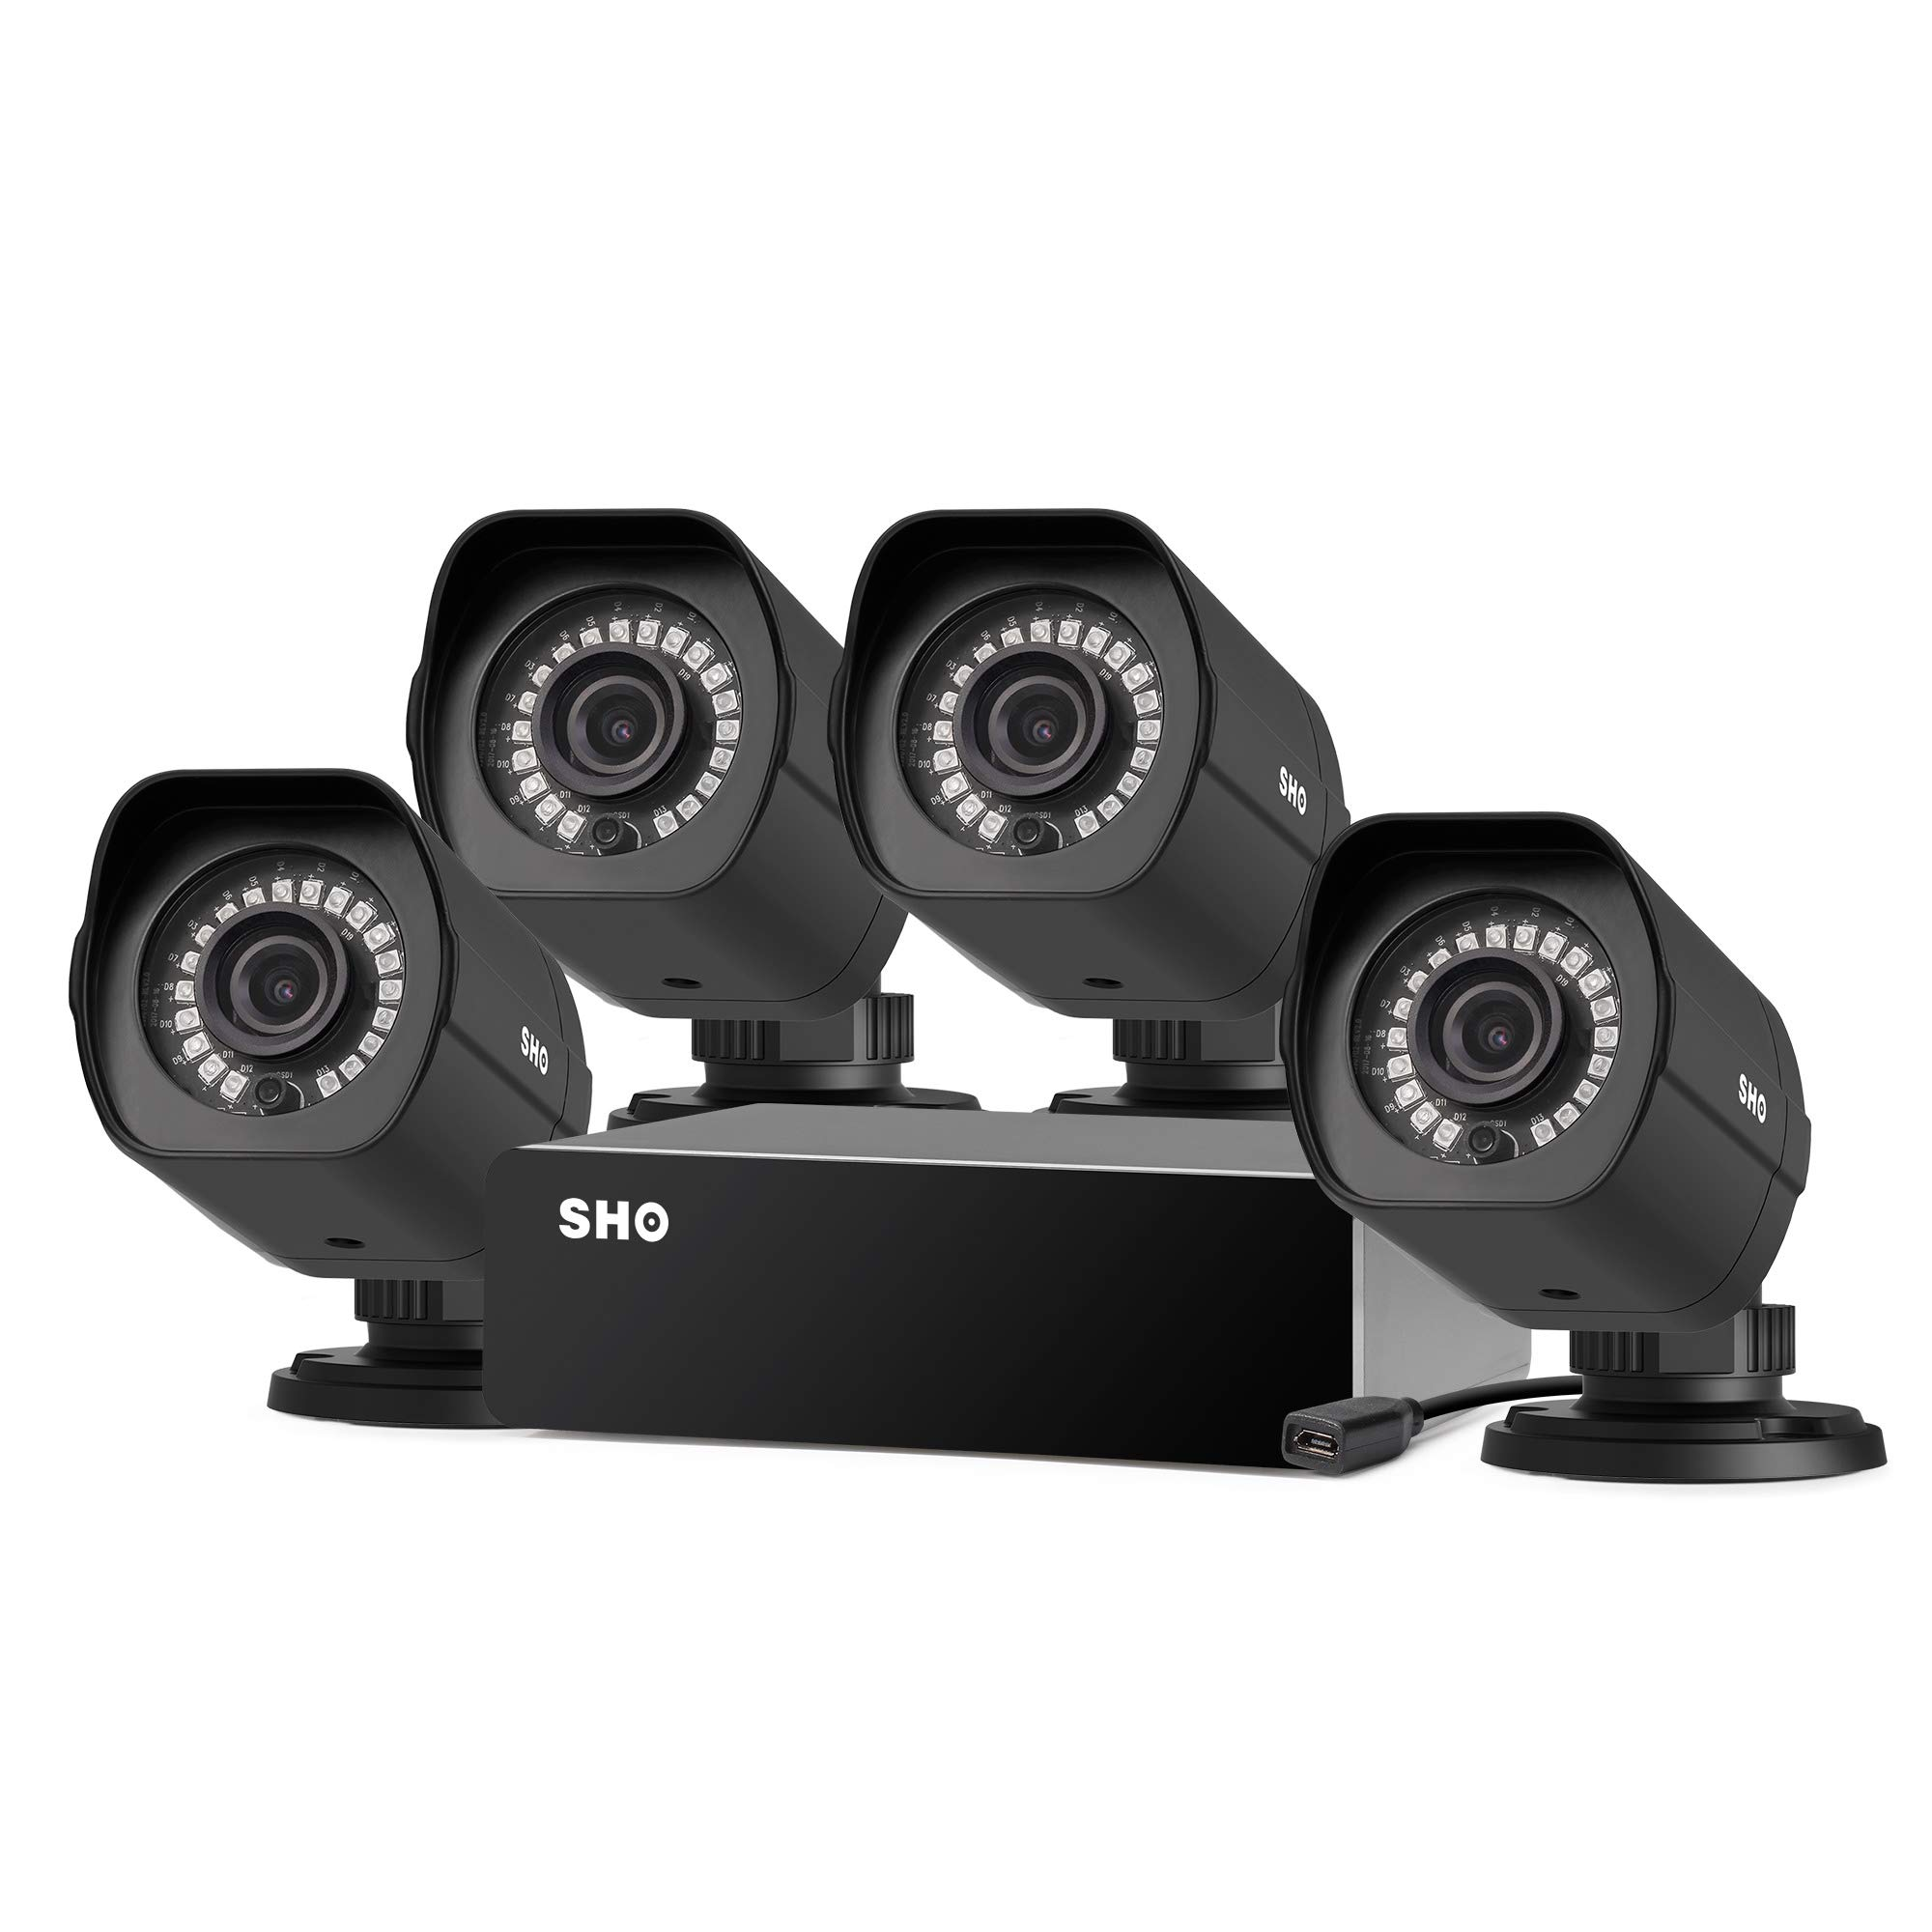 SHO 8 Channel Repeater sPoE Security Camera System 4 Pack Full HD 1080p Outdoor Wired Security Camera, Remote Monitoring, (NVR not Included)-[Free 6-Month Cloud Service for Recording]